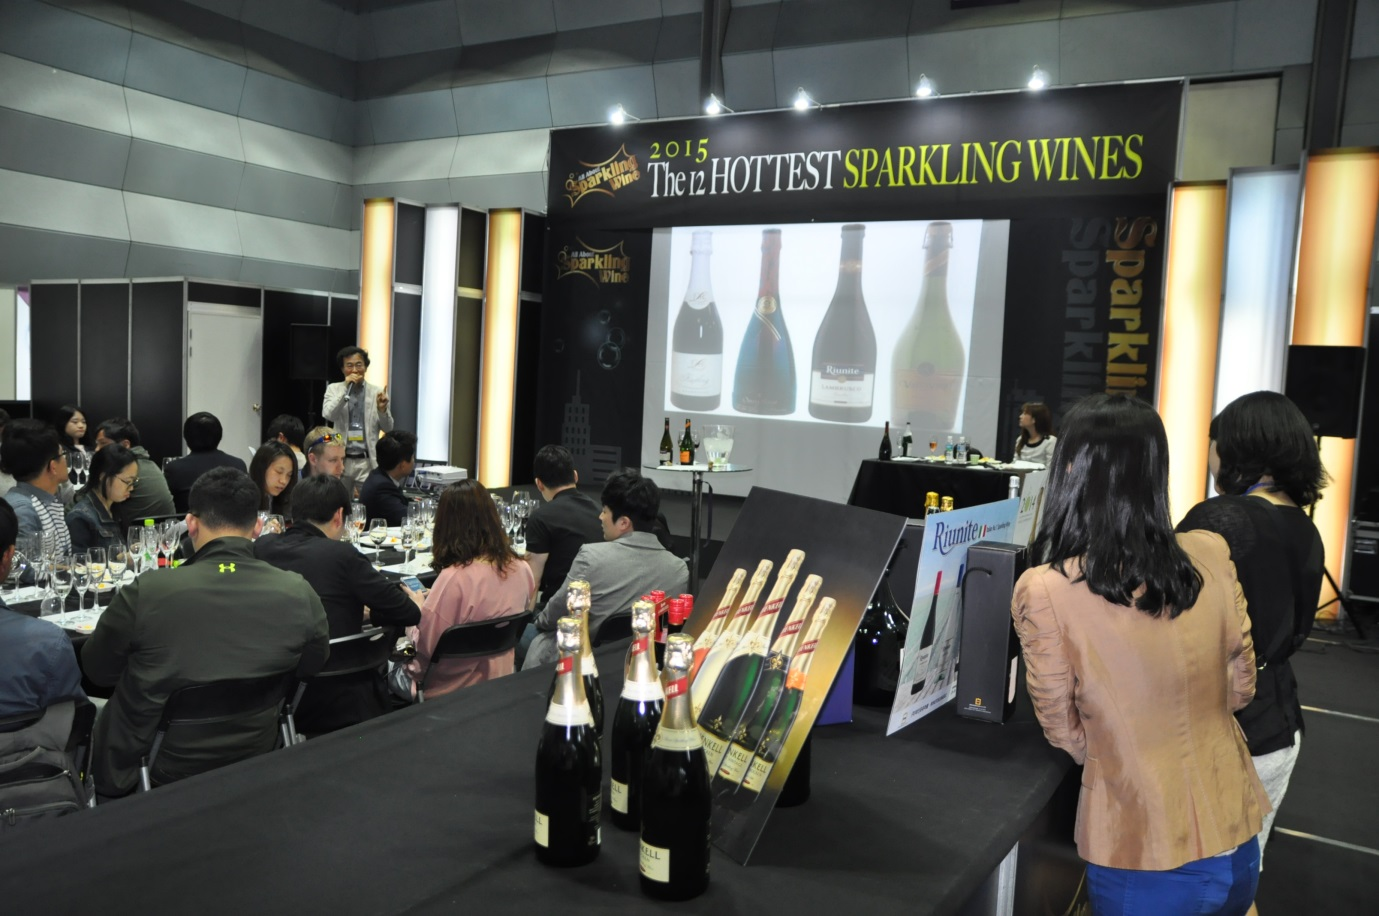 Wine For You Marble Inc. CEO Kim Min-jae speaks about sparkling wines at the 13th Seoul International Wines & Spirits Expo, which kicked off April 23.